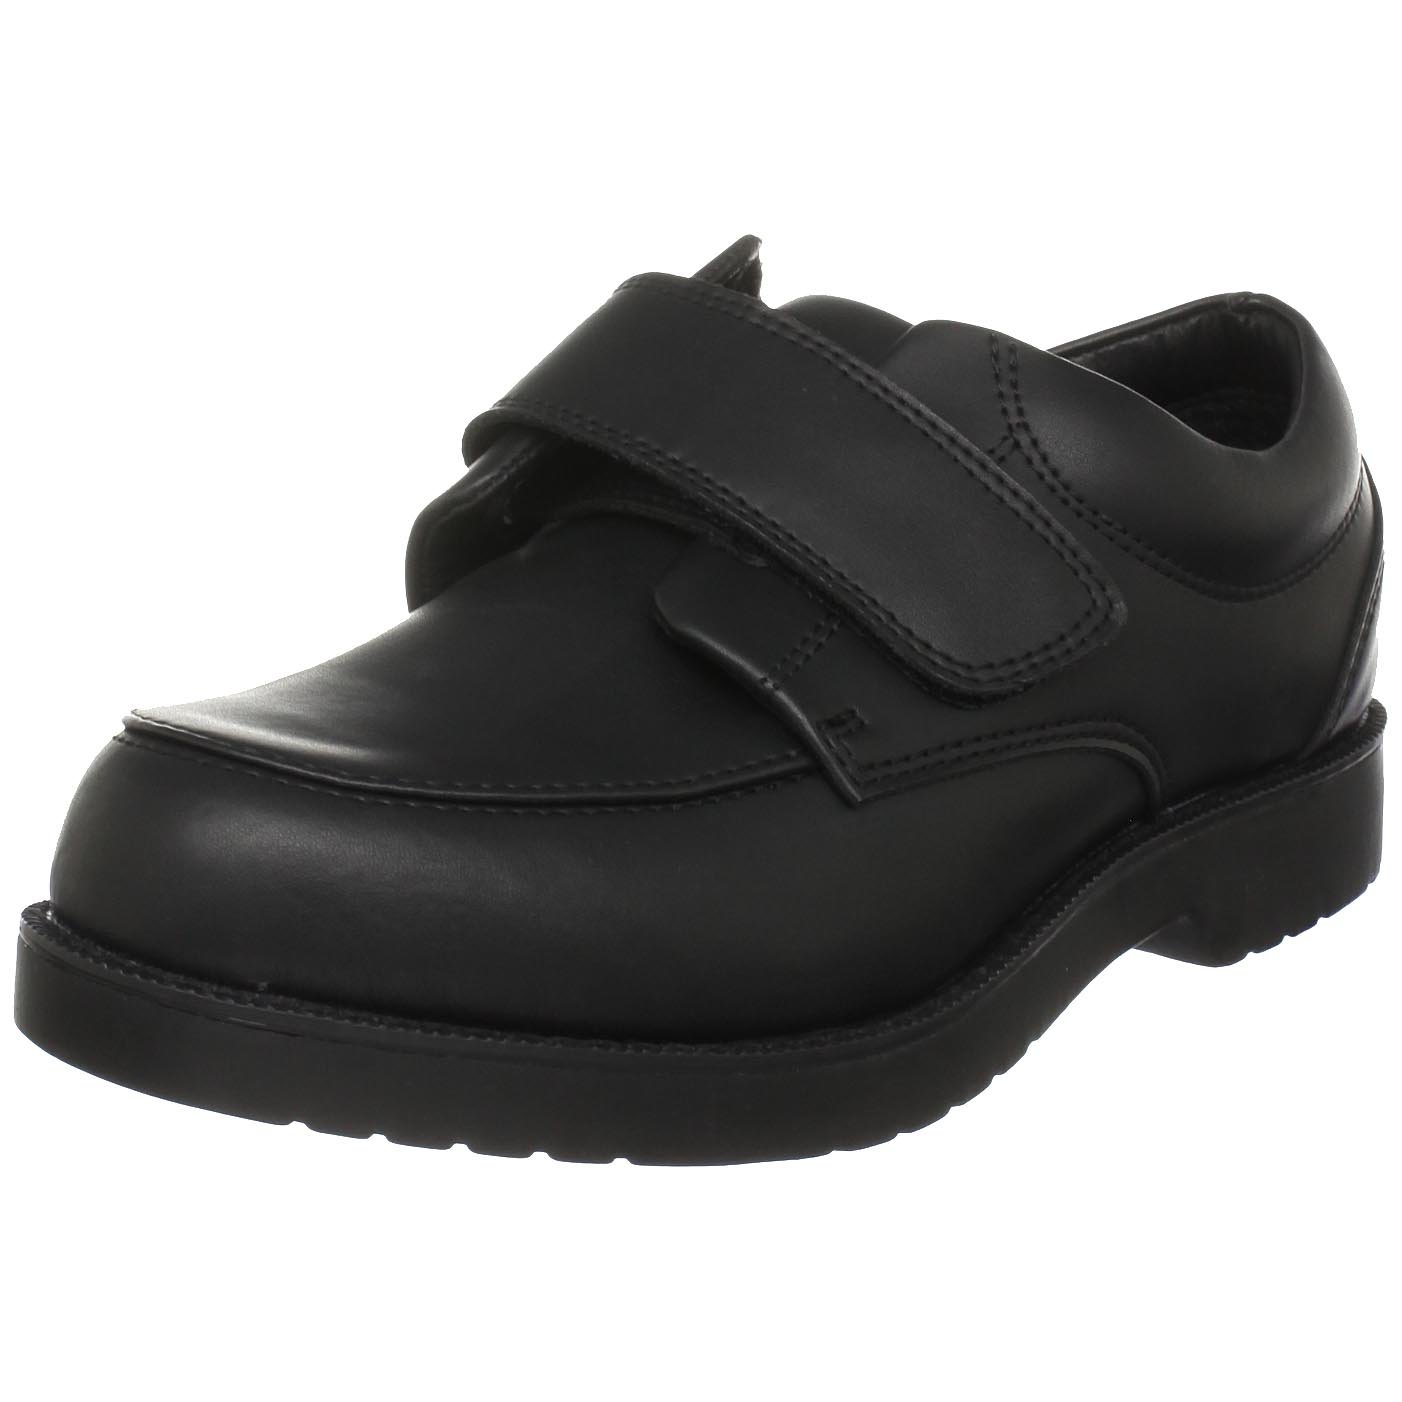 School Issue Junior Moc 2300 H&L Loafer (Toddler/Little Kid/Big Kid),Black Leather,9 M US Toddler by SCHOOL ISSUE